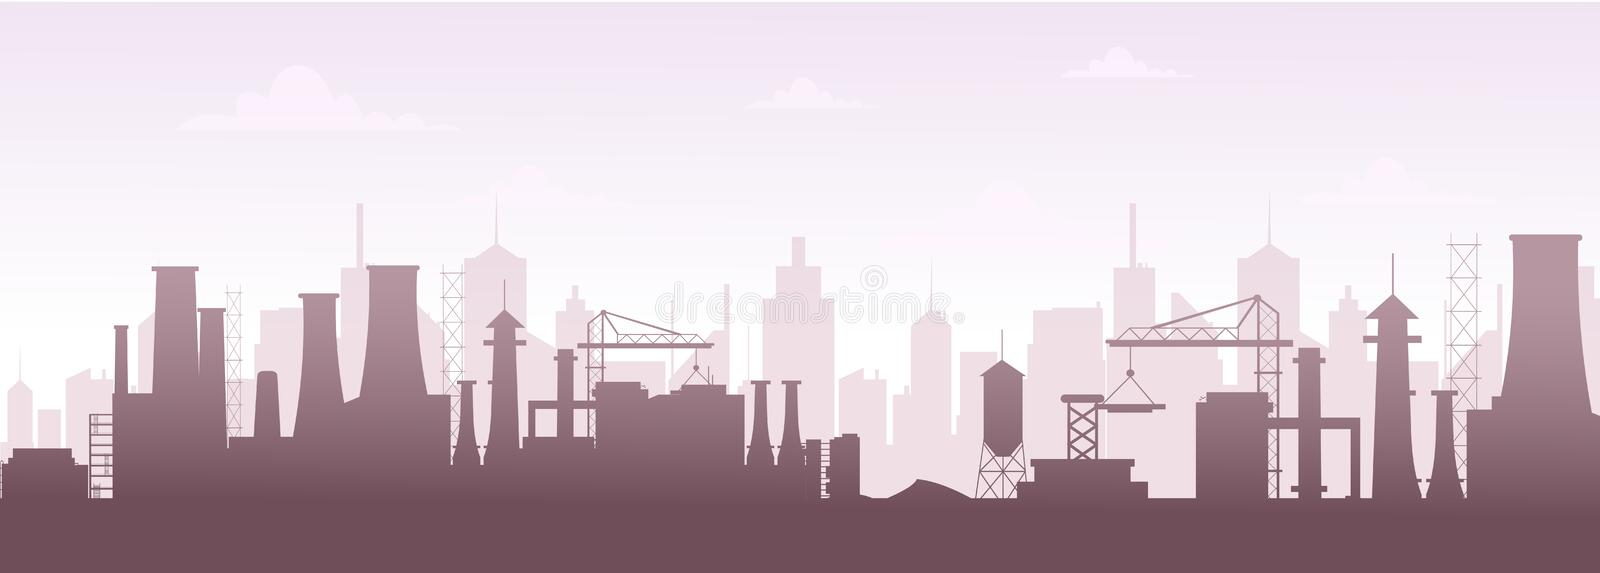 Vector illustration of industrial buildings silhouette skyline. Modern city landscape, factory pollution in flat style. stock illustration